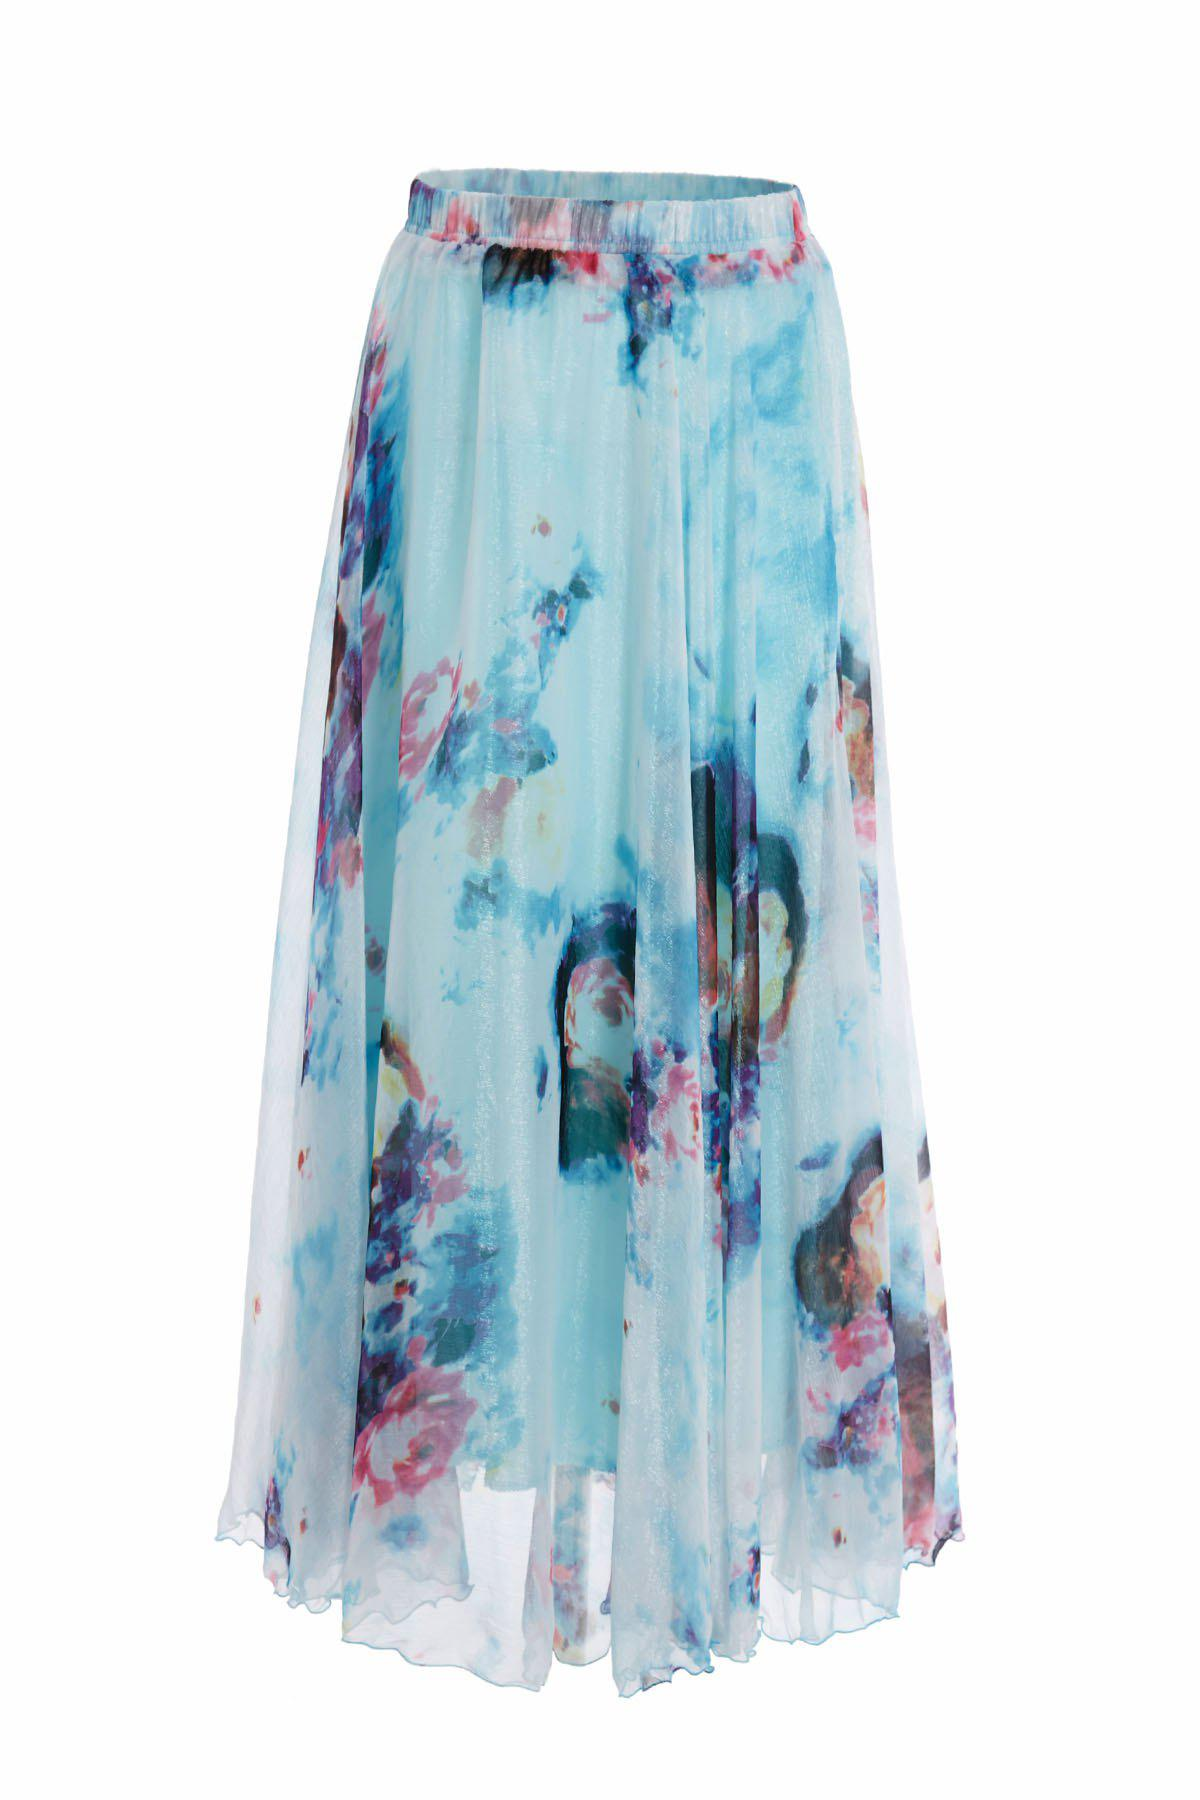 Bohemian Women's Floral Print Ankle-Length Chiffon Skirt - LIGHT BLUE S